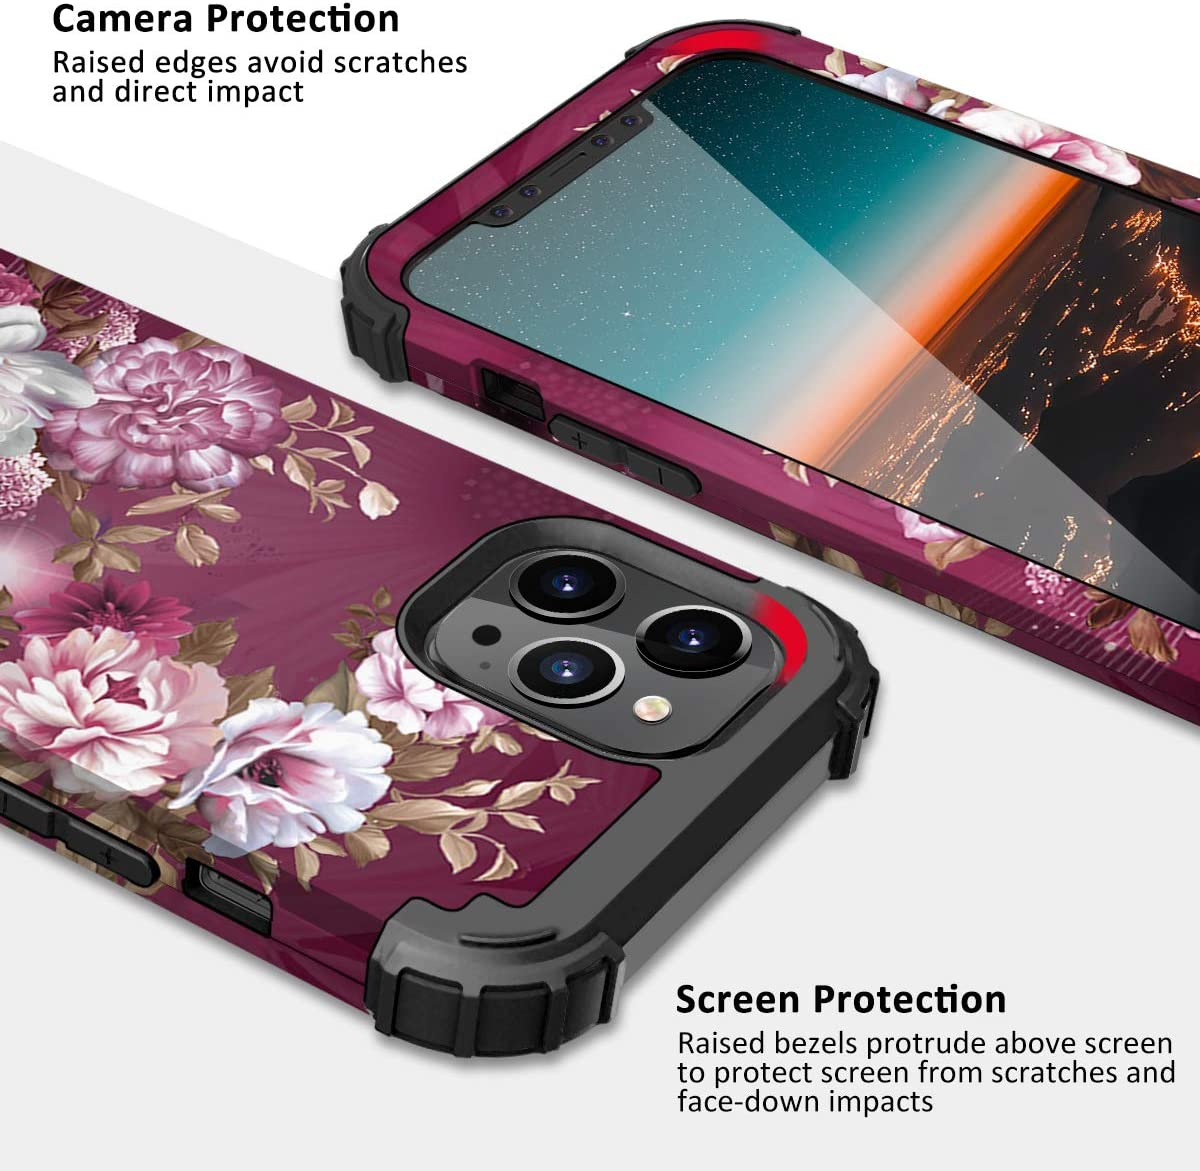 Hocase Compatible with iPhone 12/12 Pro Case, Heavy Duty Shockproof Soft Silicone Rubber Bumpers Hard PC Protective Case for iPhone 12/iPhone 12 Pro (6.1